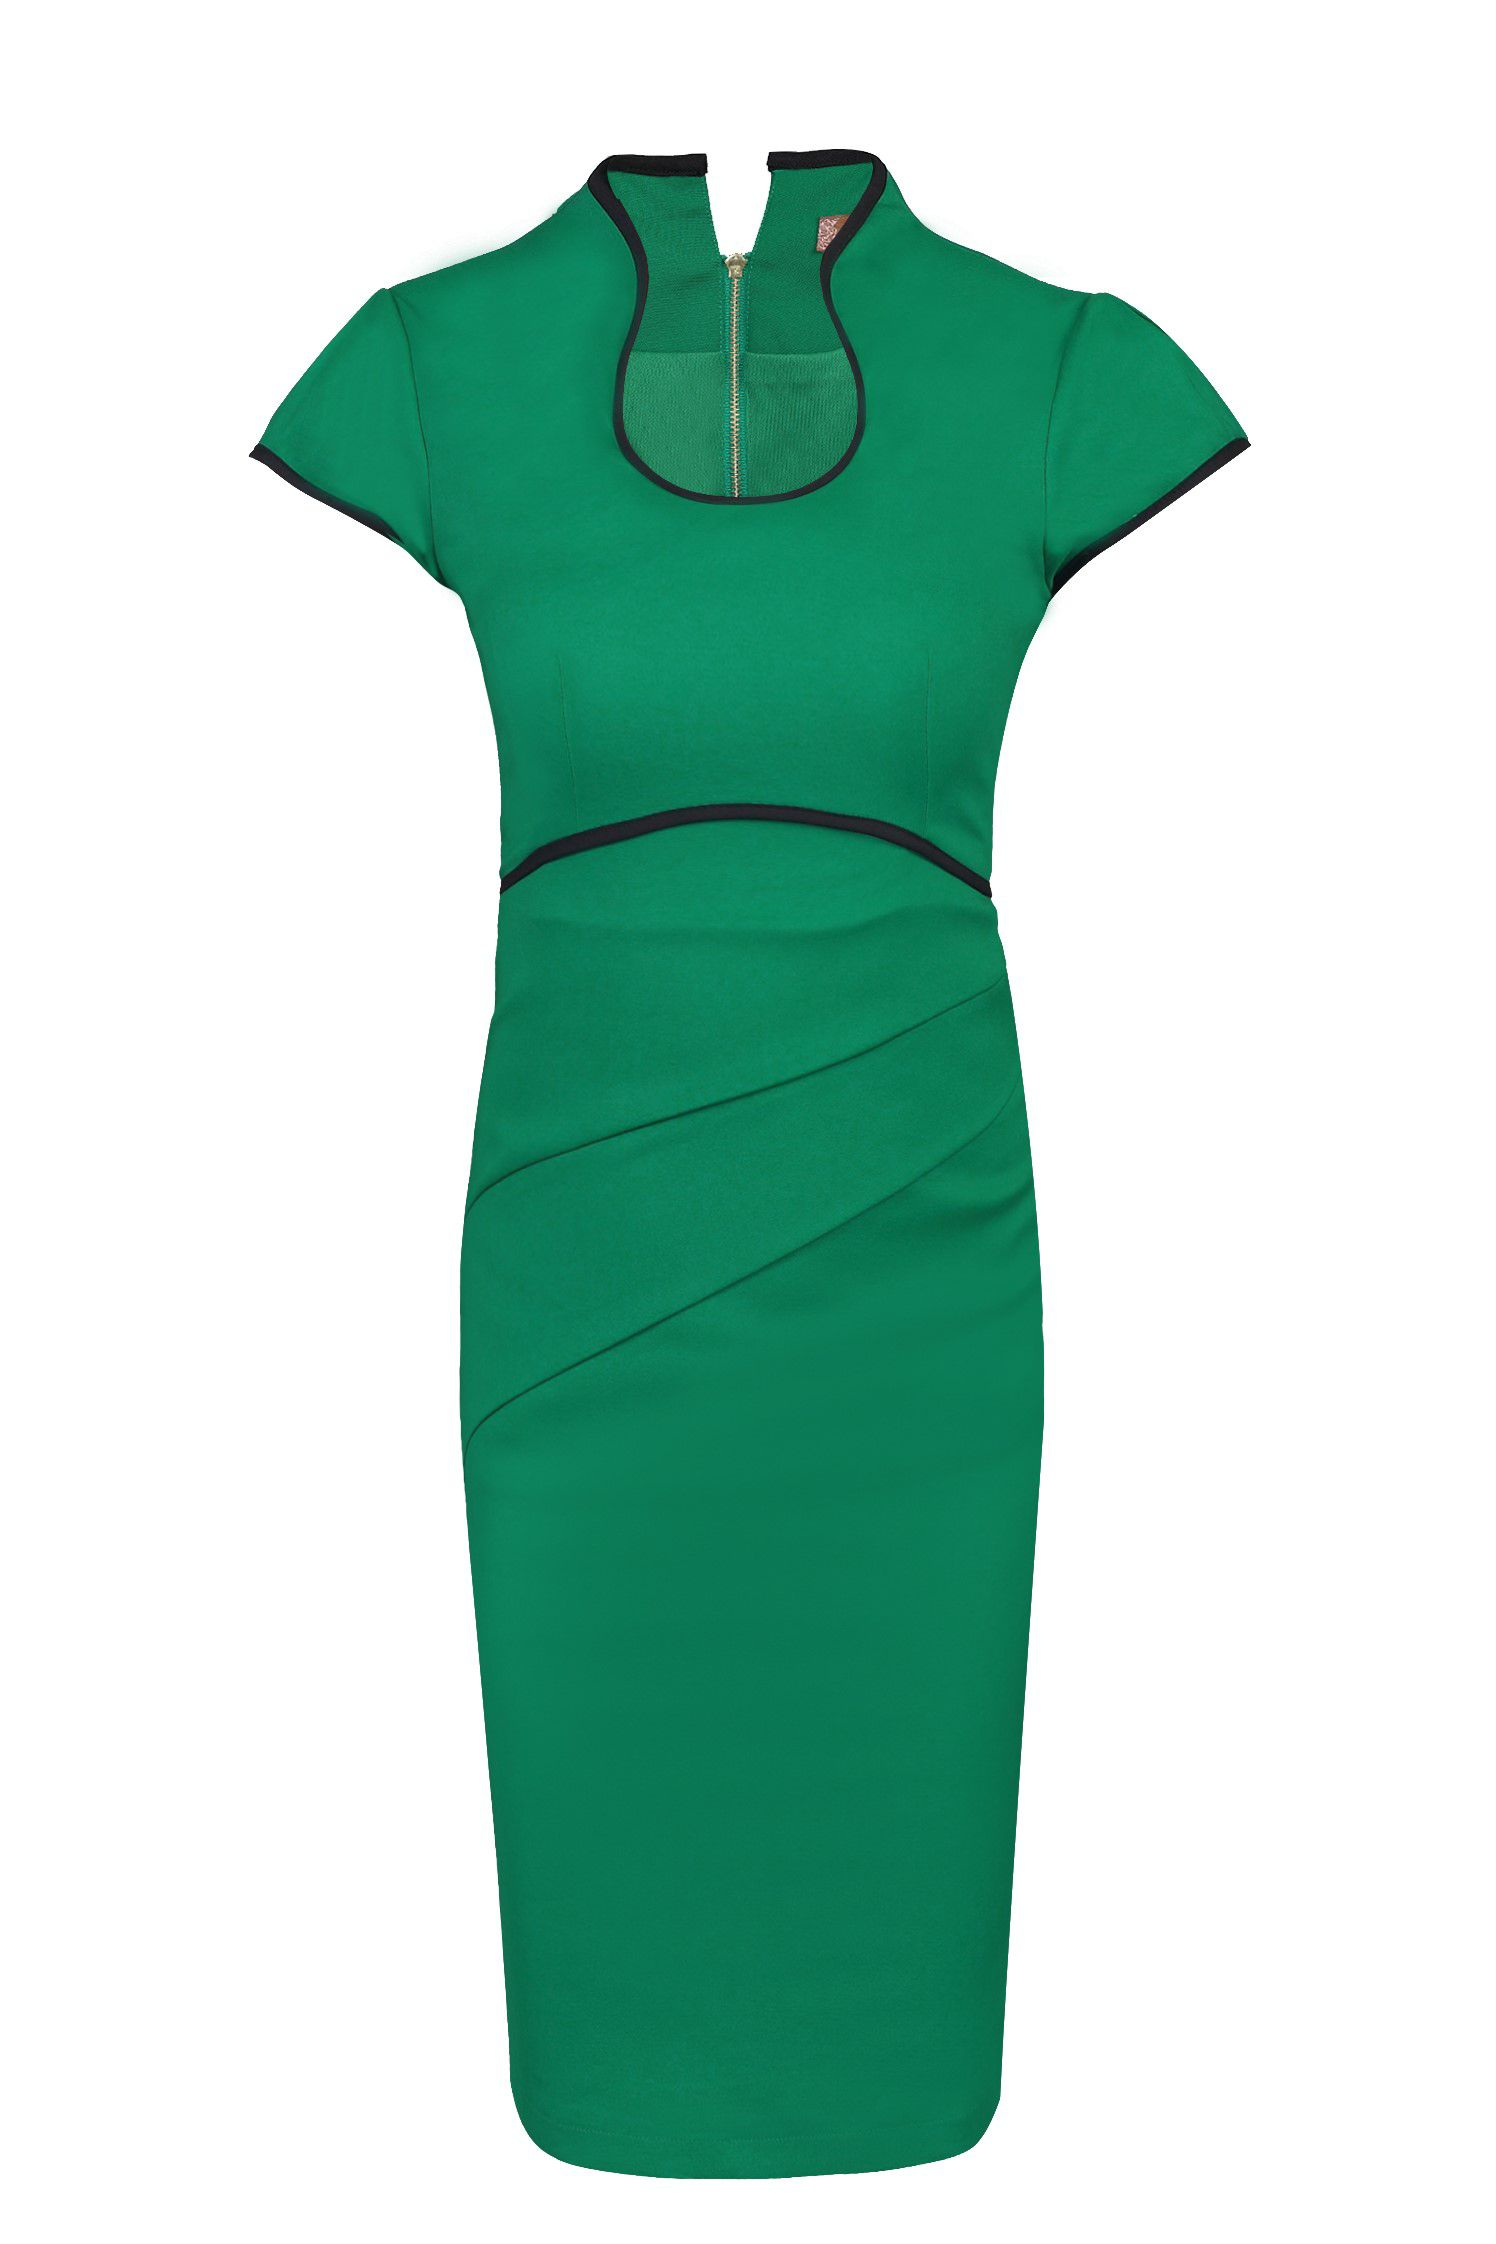 Jolie Moi Contrast Trimmed High Collar Dress, Green